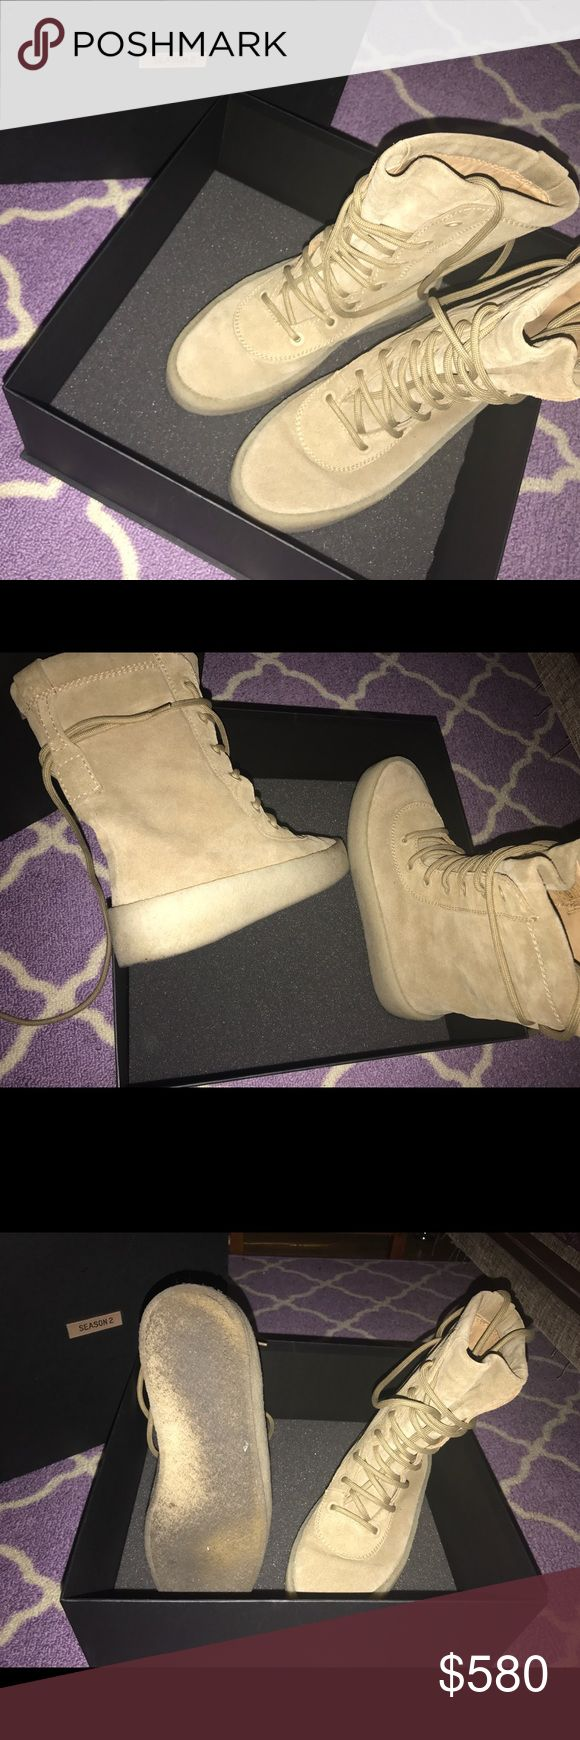 Yeezy Season 2 Crepe Boots Authentic Pre-loved Boots! Worn 3 times, signs of wear can only be seen on bottom of boots as seen in pictures. Other than that, boots are free from scuffs, comes in original box and dustbag. These are a size 9 in women's. Yeezy Shoes Combat & Moto Boots